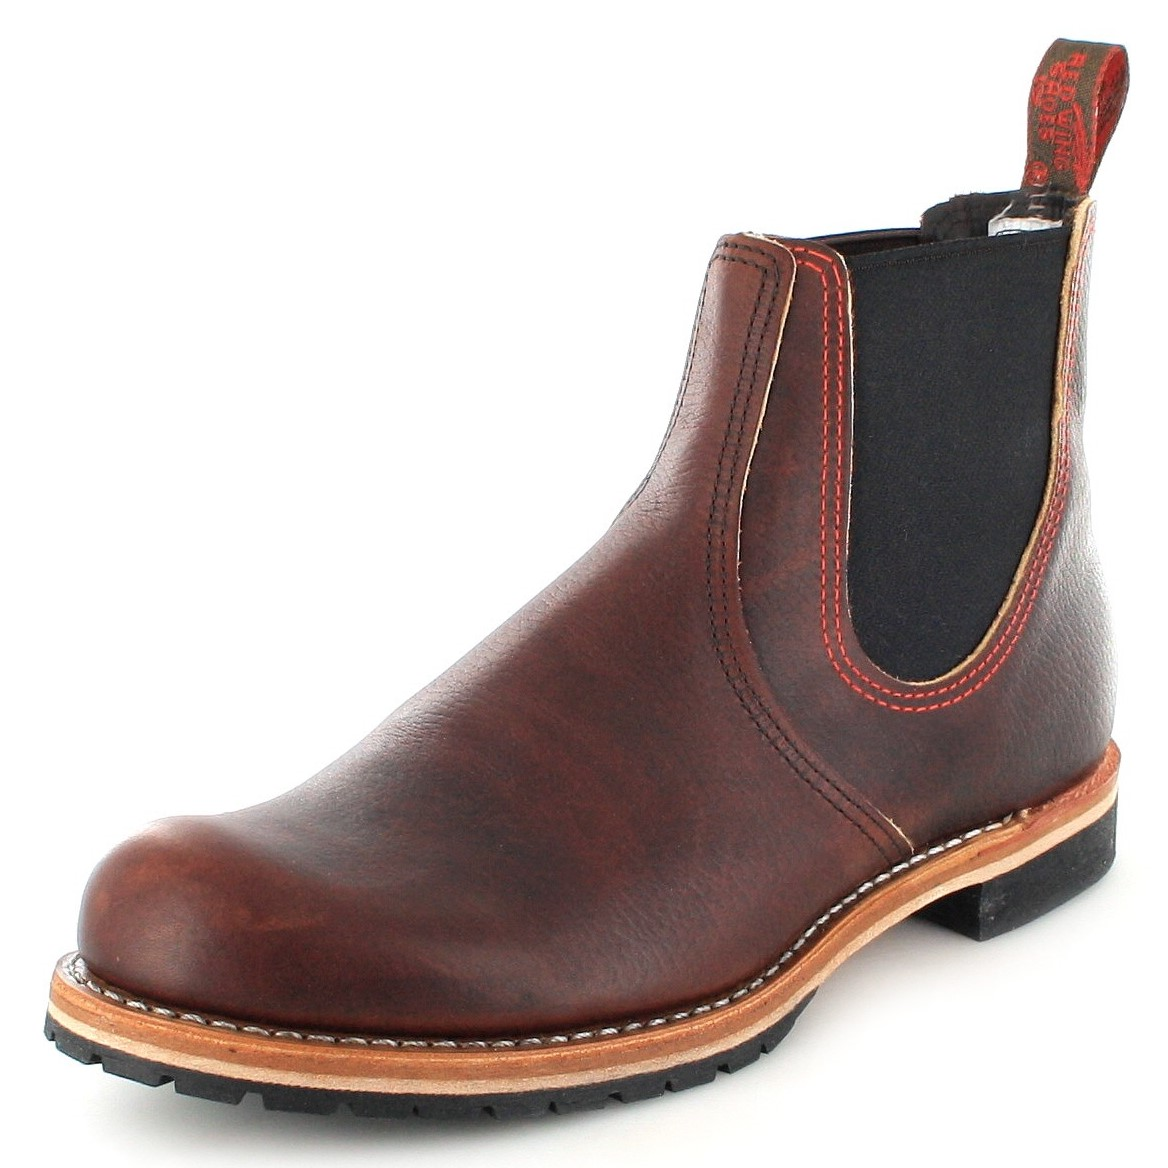 Red Wing Shoes 2917 CHELSEA RANCHER Briar Herren Chelsea Boots  - braun